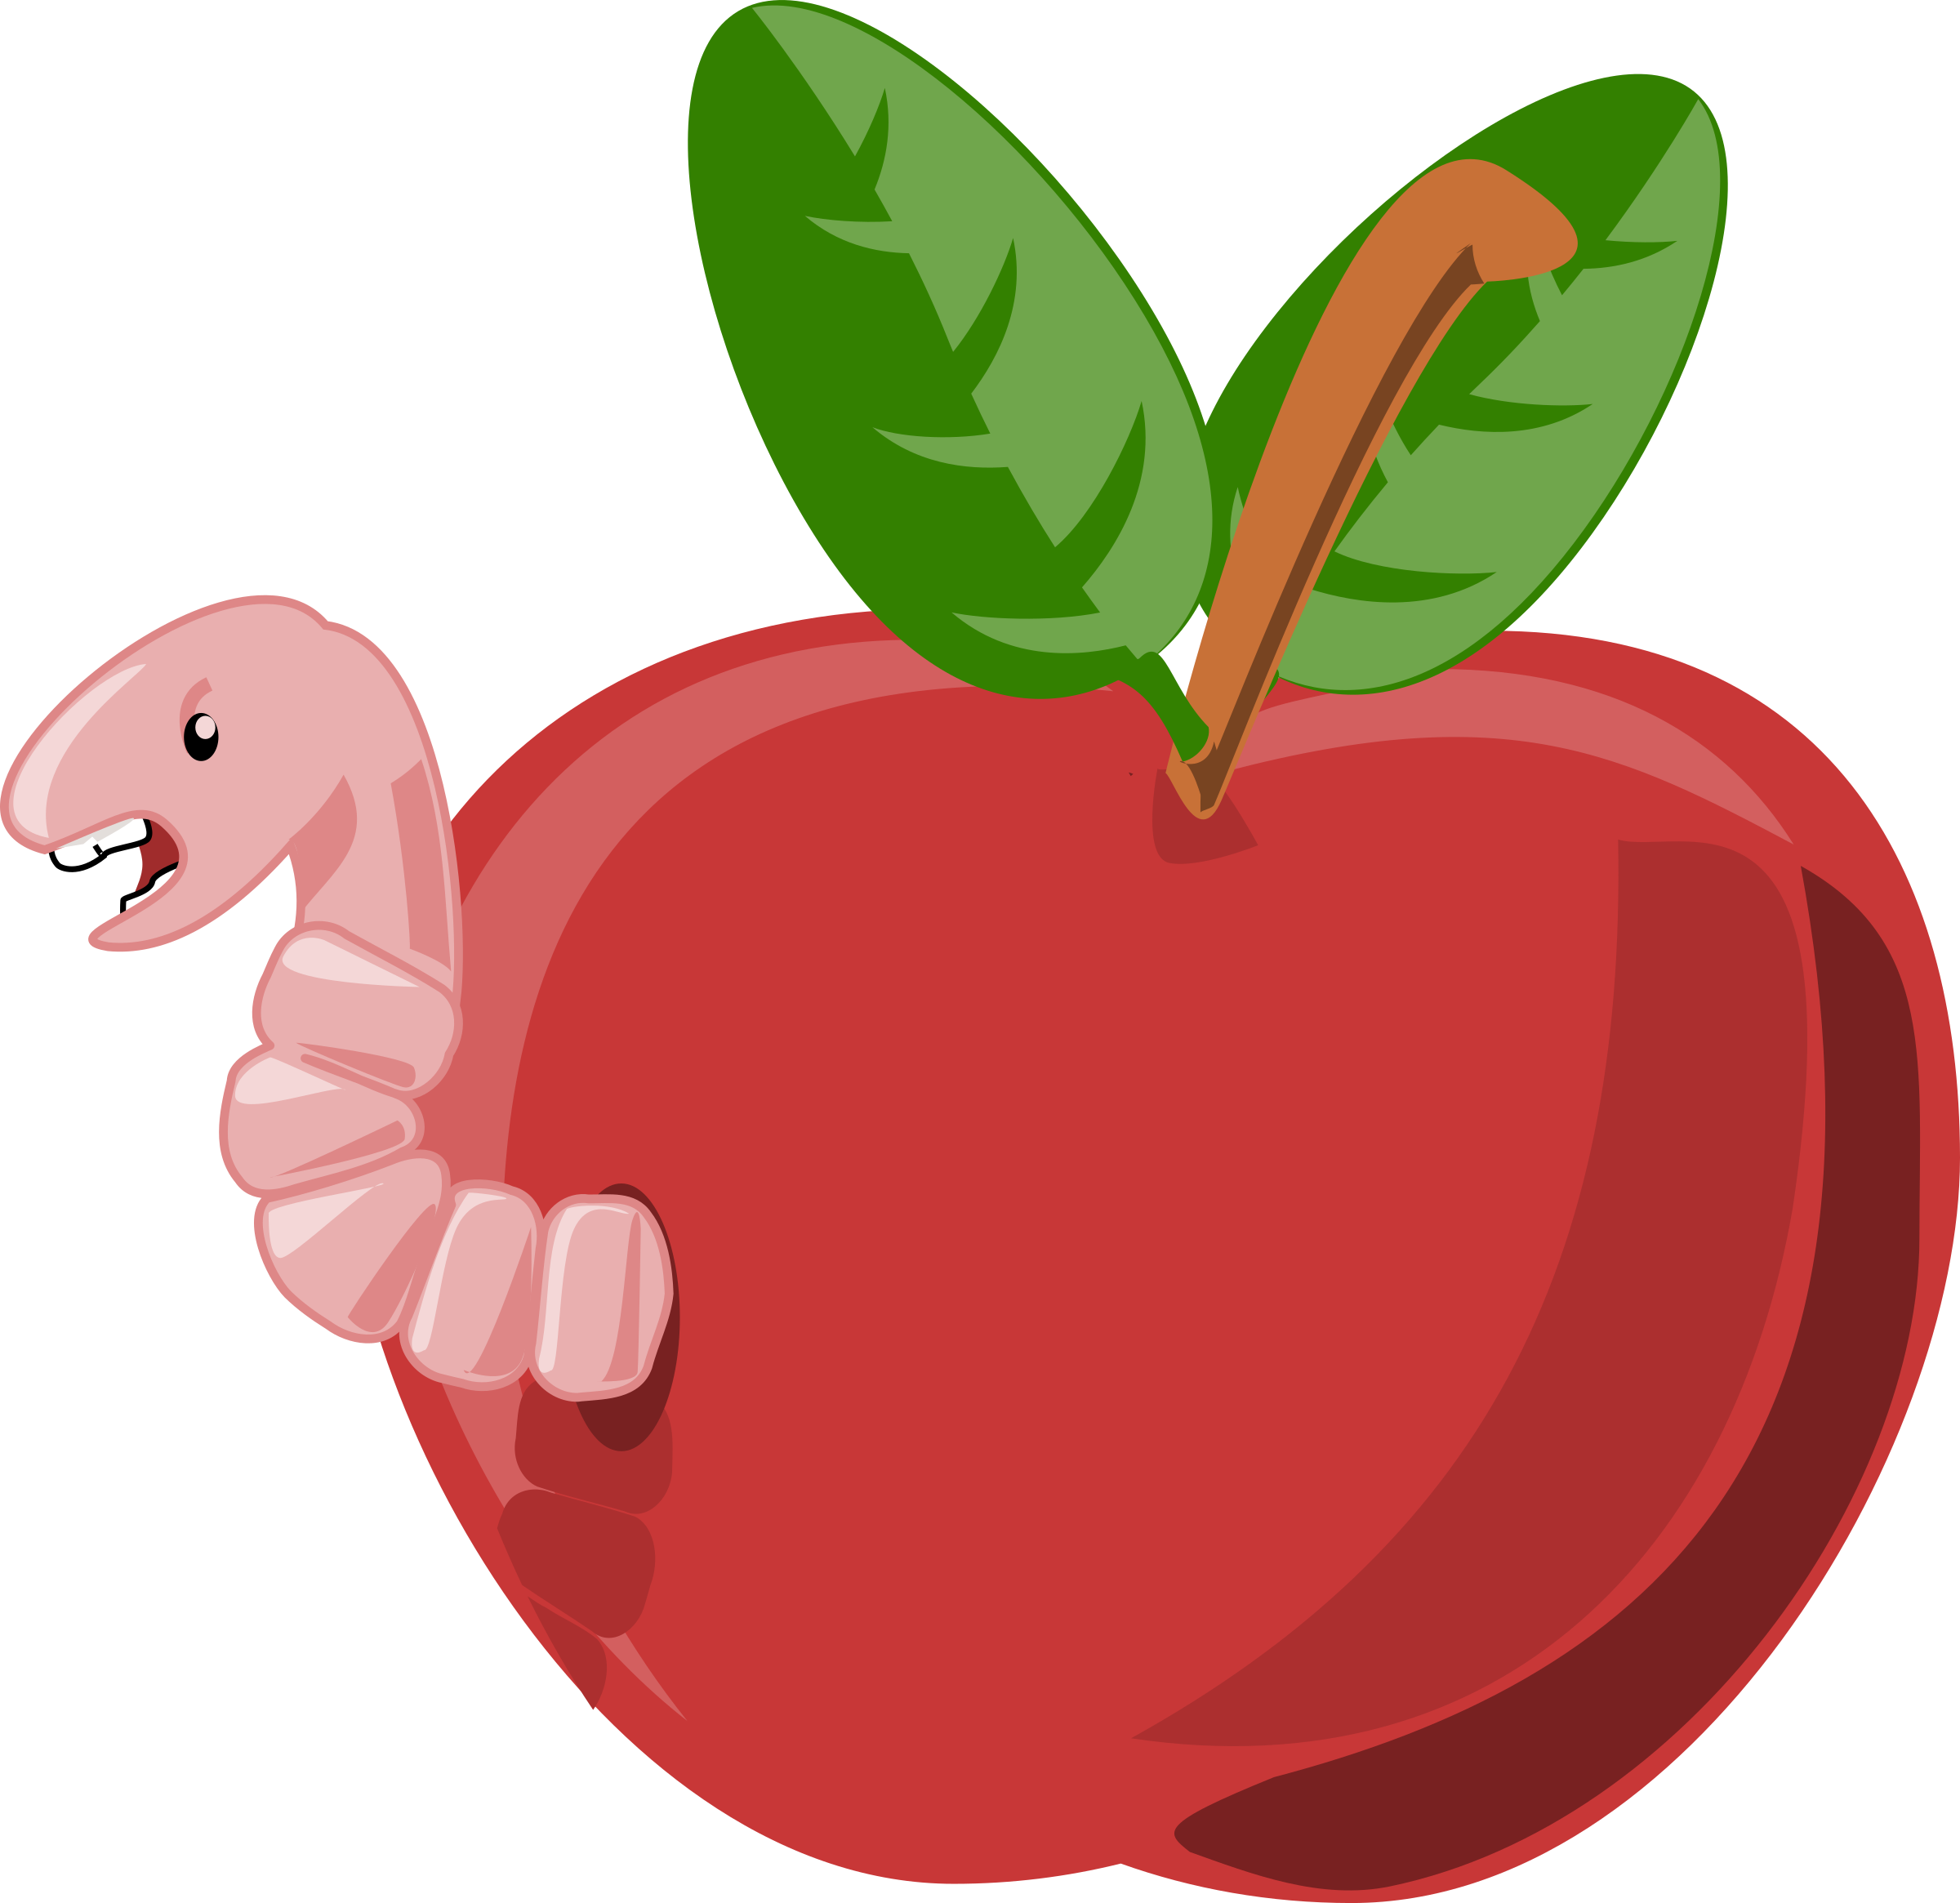 2400x2330 61515383 Cute Cartoon Apple Isolated On White Background Vector